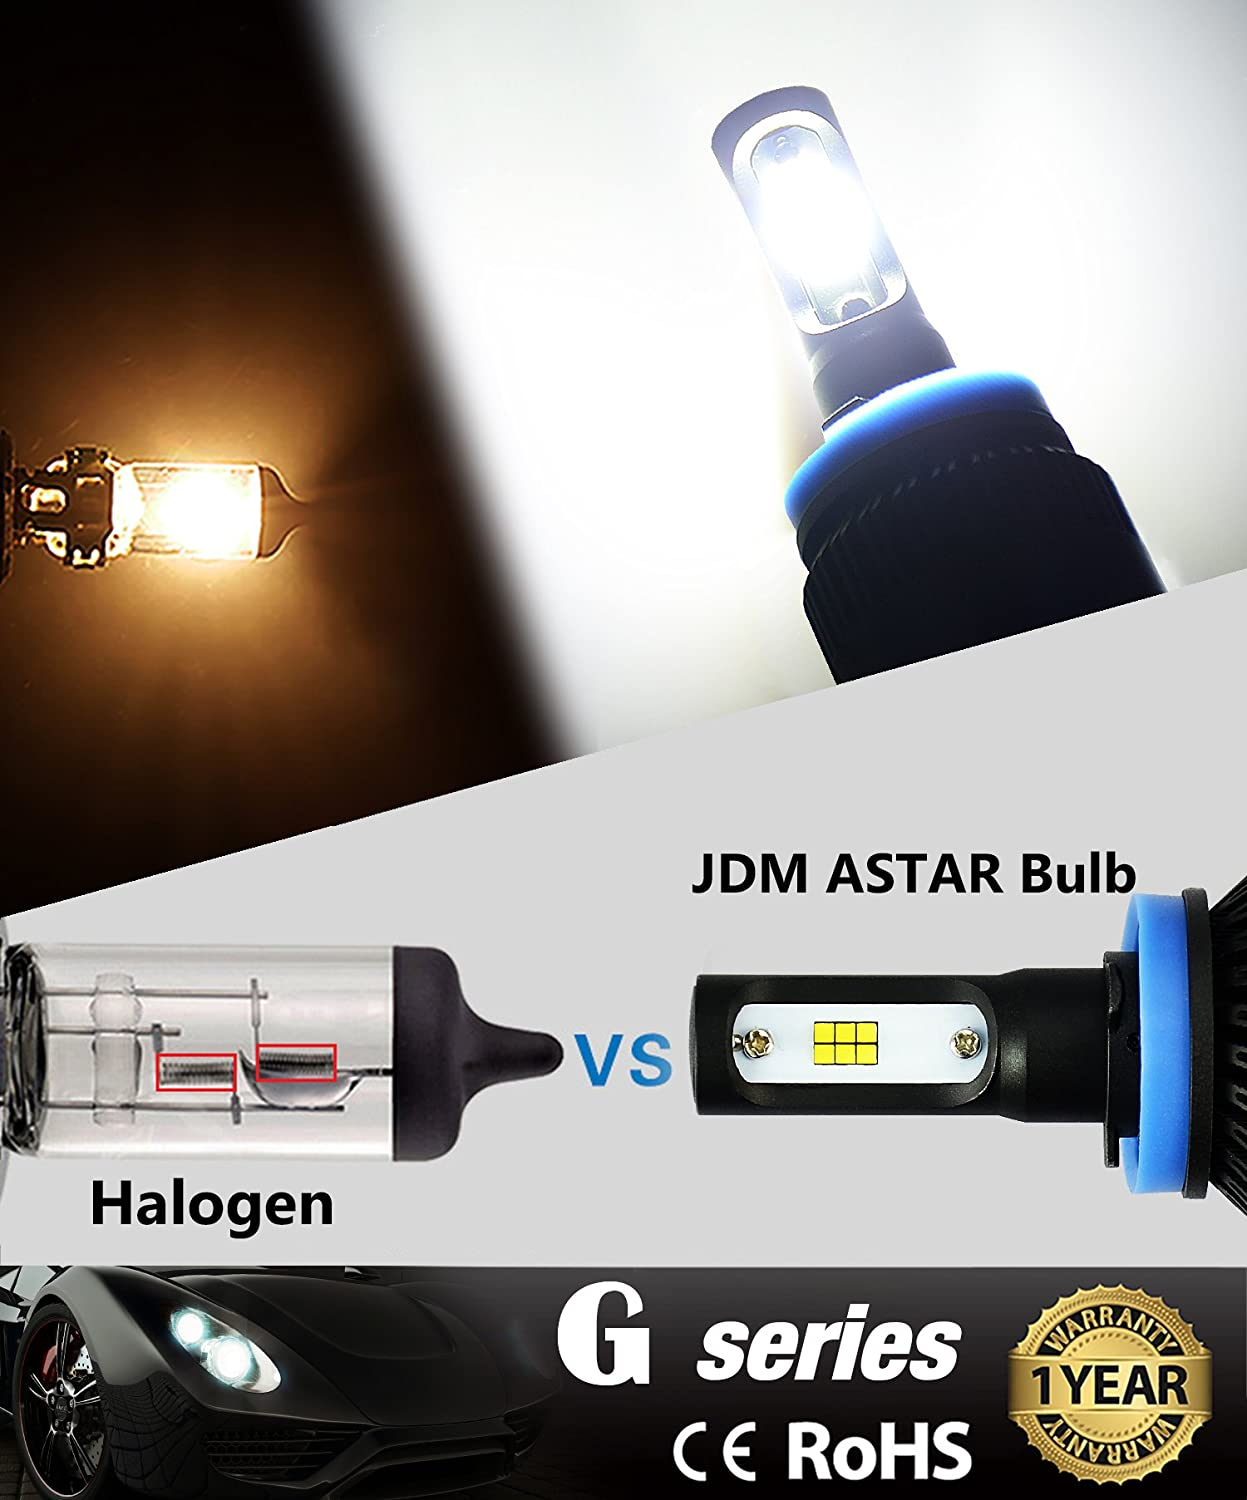 Jdm Astar G2 8000 Lumens Extremely Bright Csp Chipsets Hid Conversion Kit Wiring Diagram 08 Altima H11 H8 H9 Led Headlight Bulbs For Fog Light Drl And Headlights